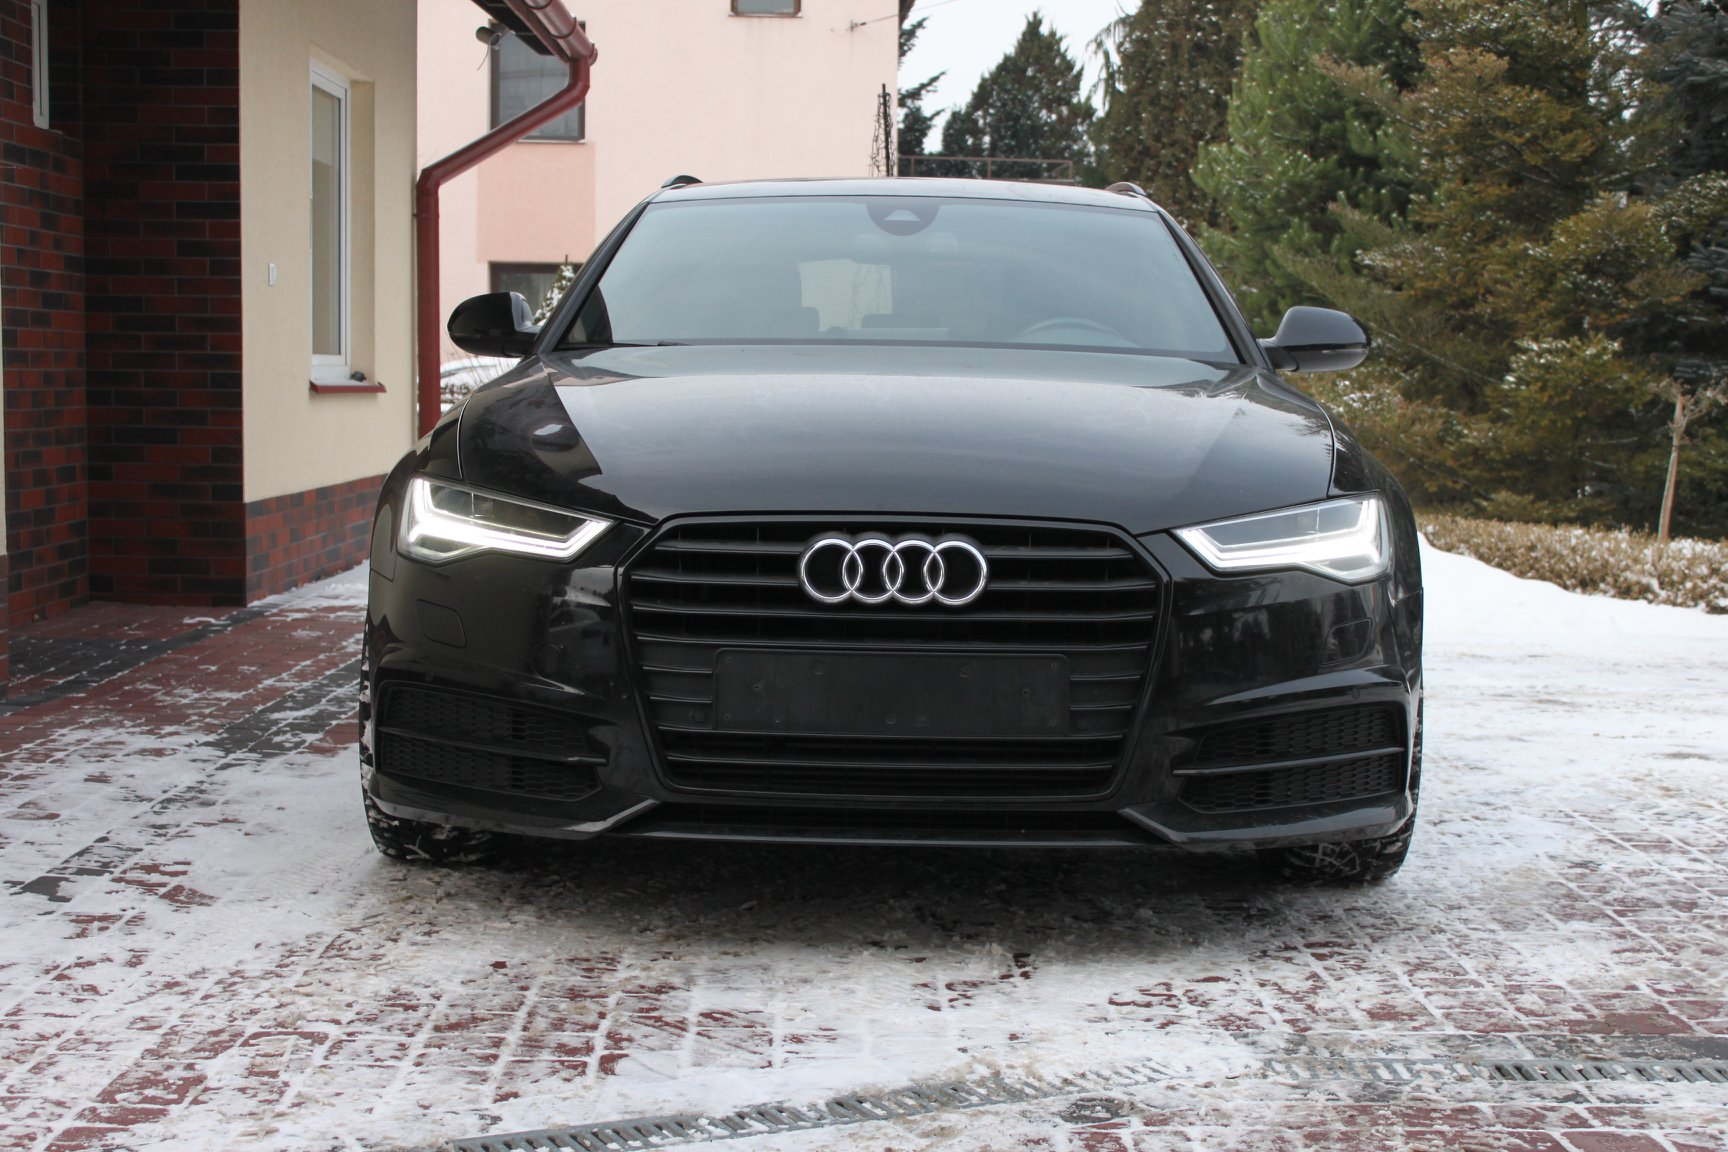 AUDI A6 C7 LIFT 2016 3.0 BiTurbo BLACK Avant